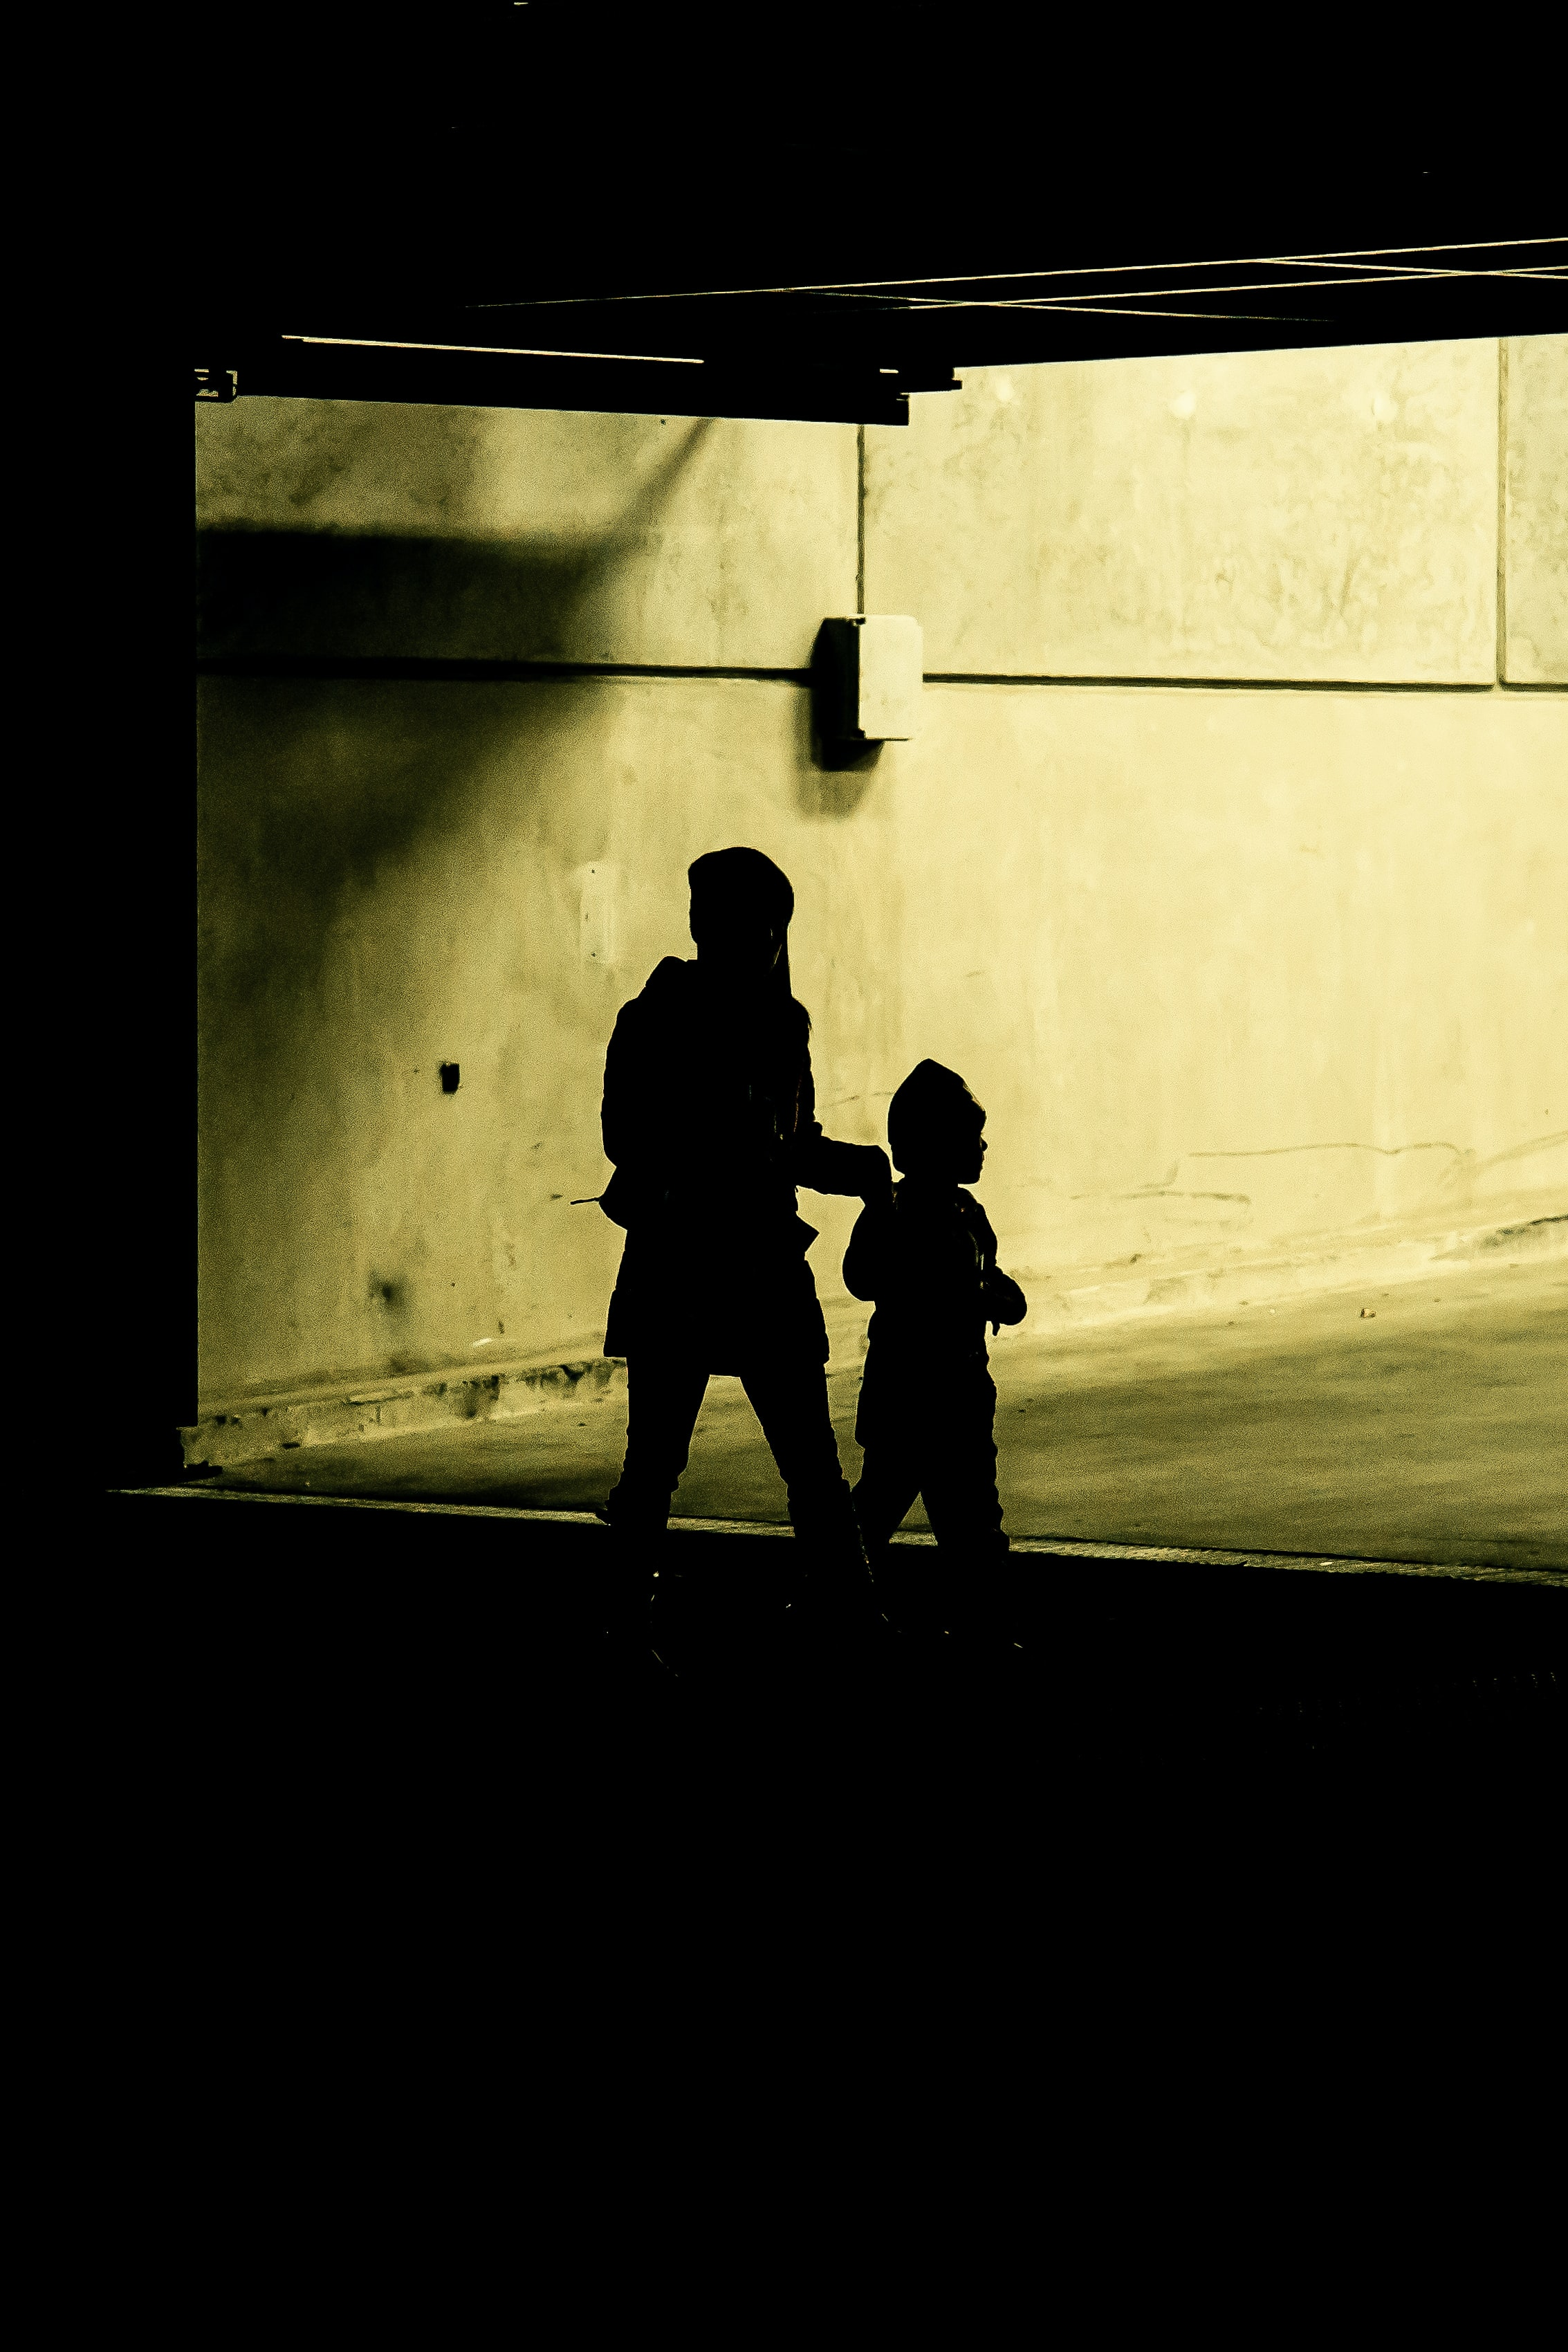 silhouette photo of woman and child inside building